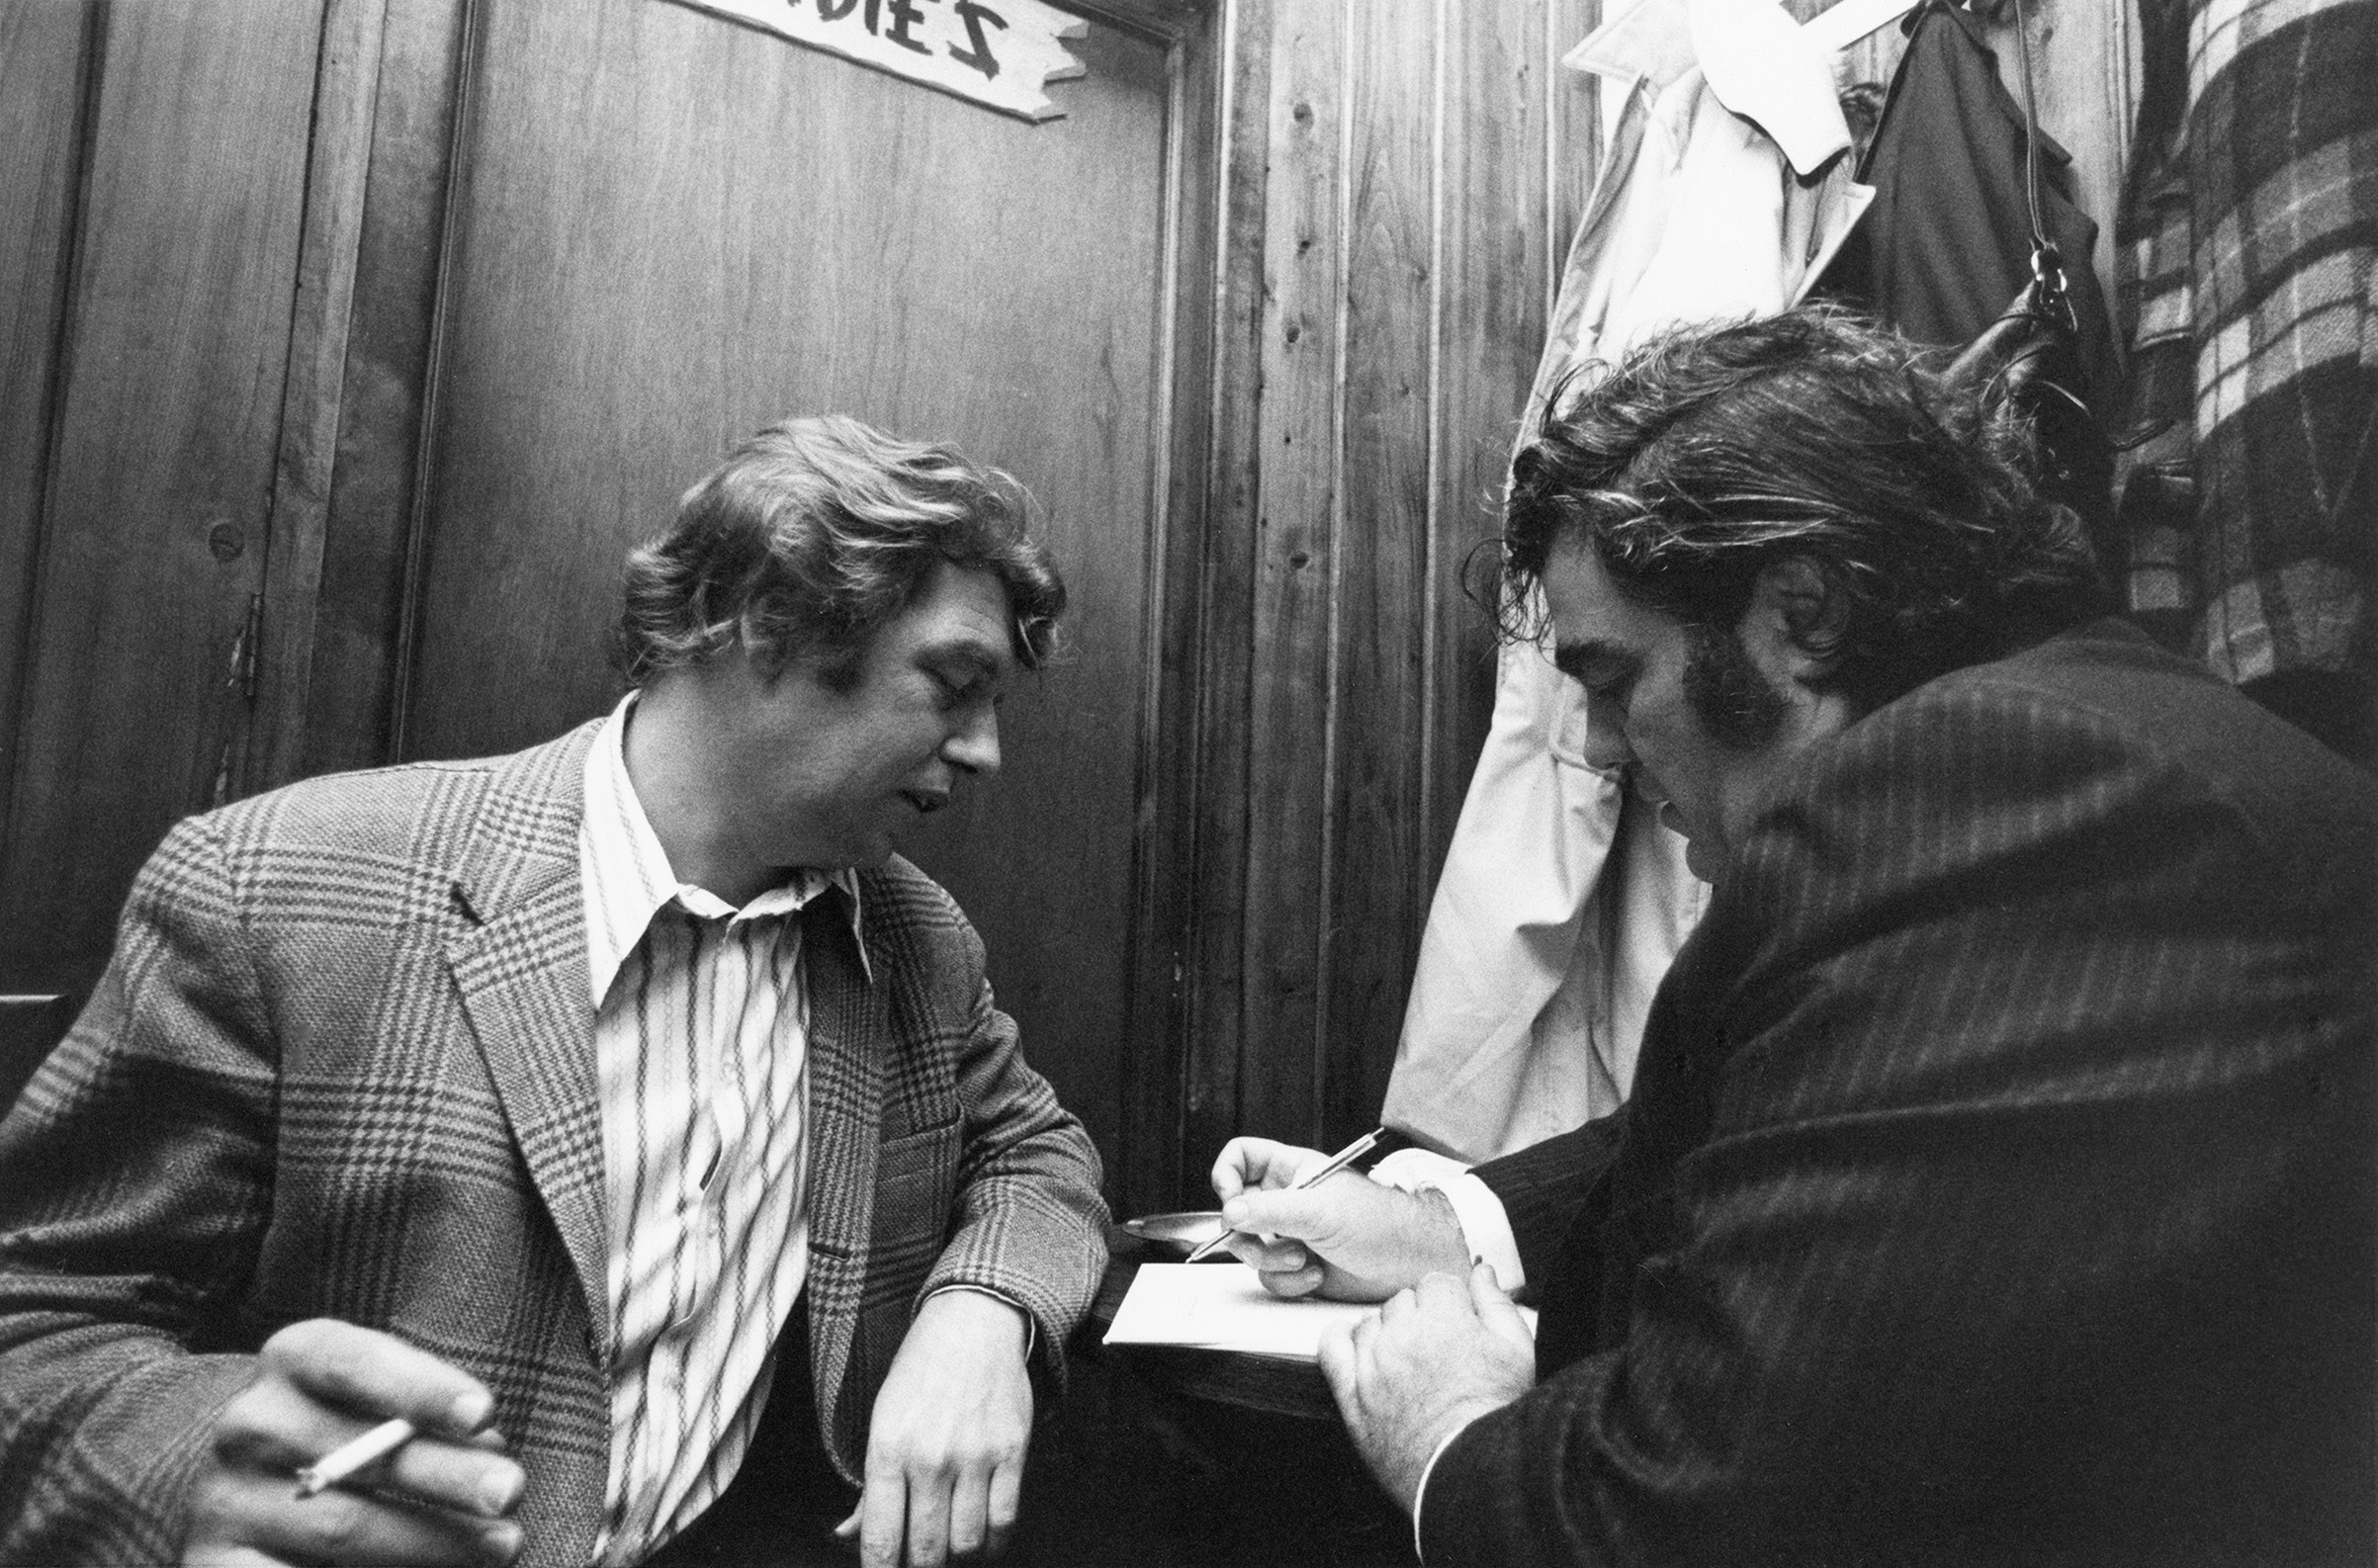 Hamill and Breslin: colleagues, friends and stars of the New York City newspaper world